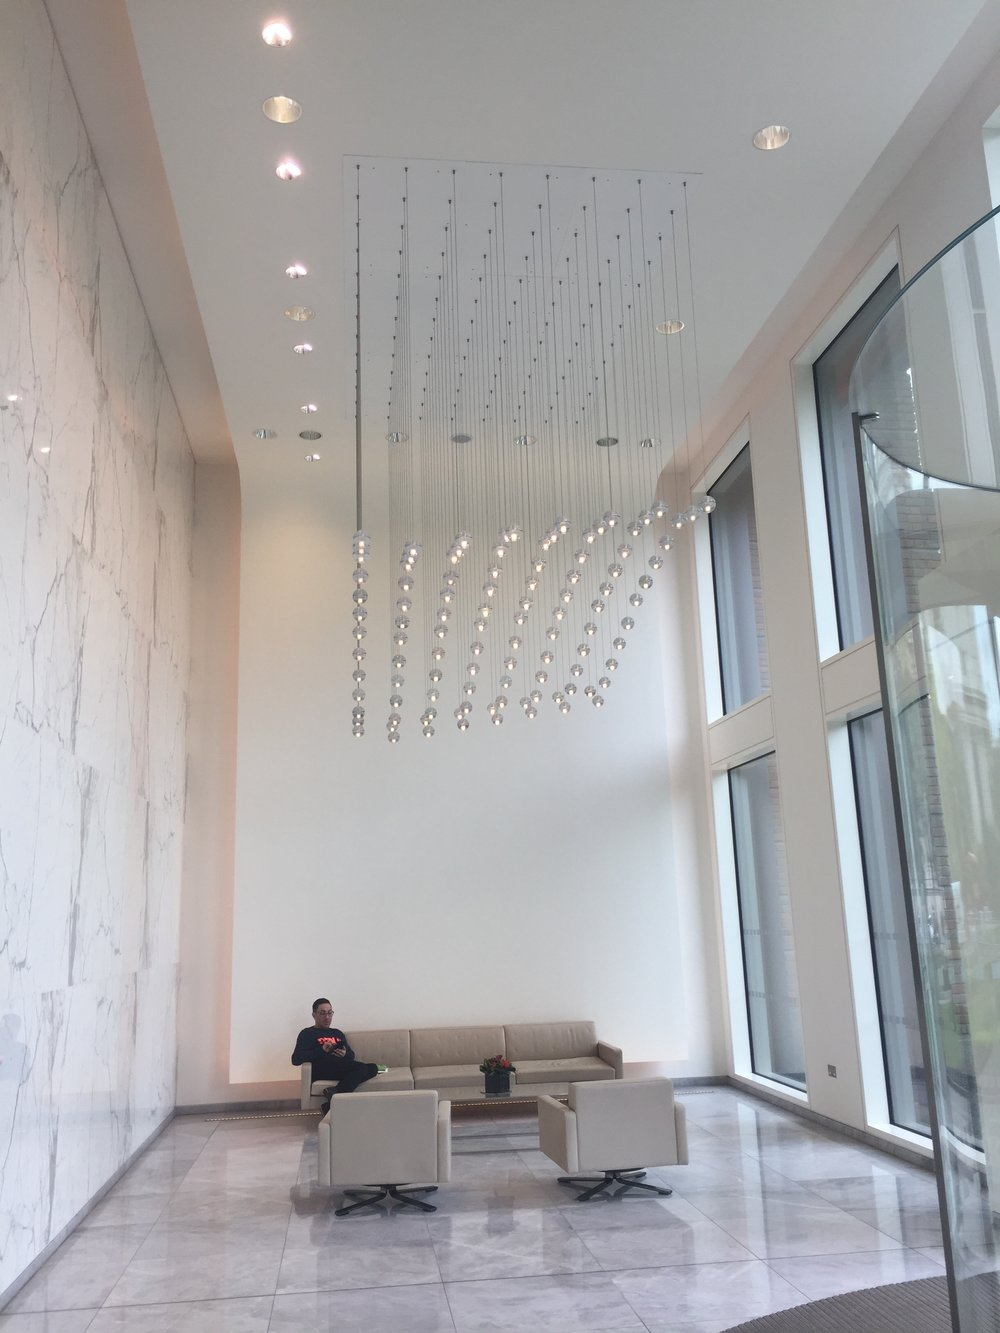 One carter lane lobby.JPG